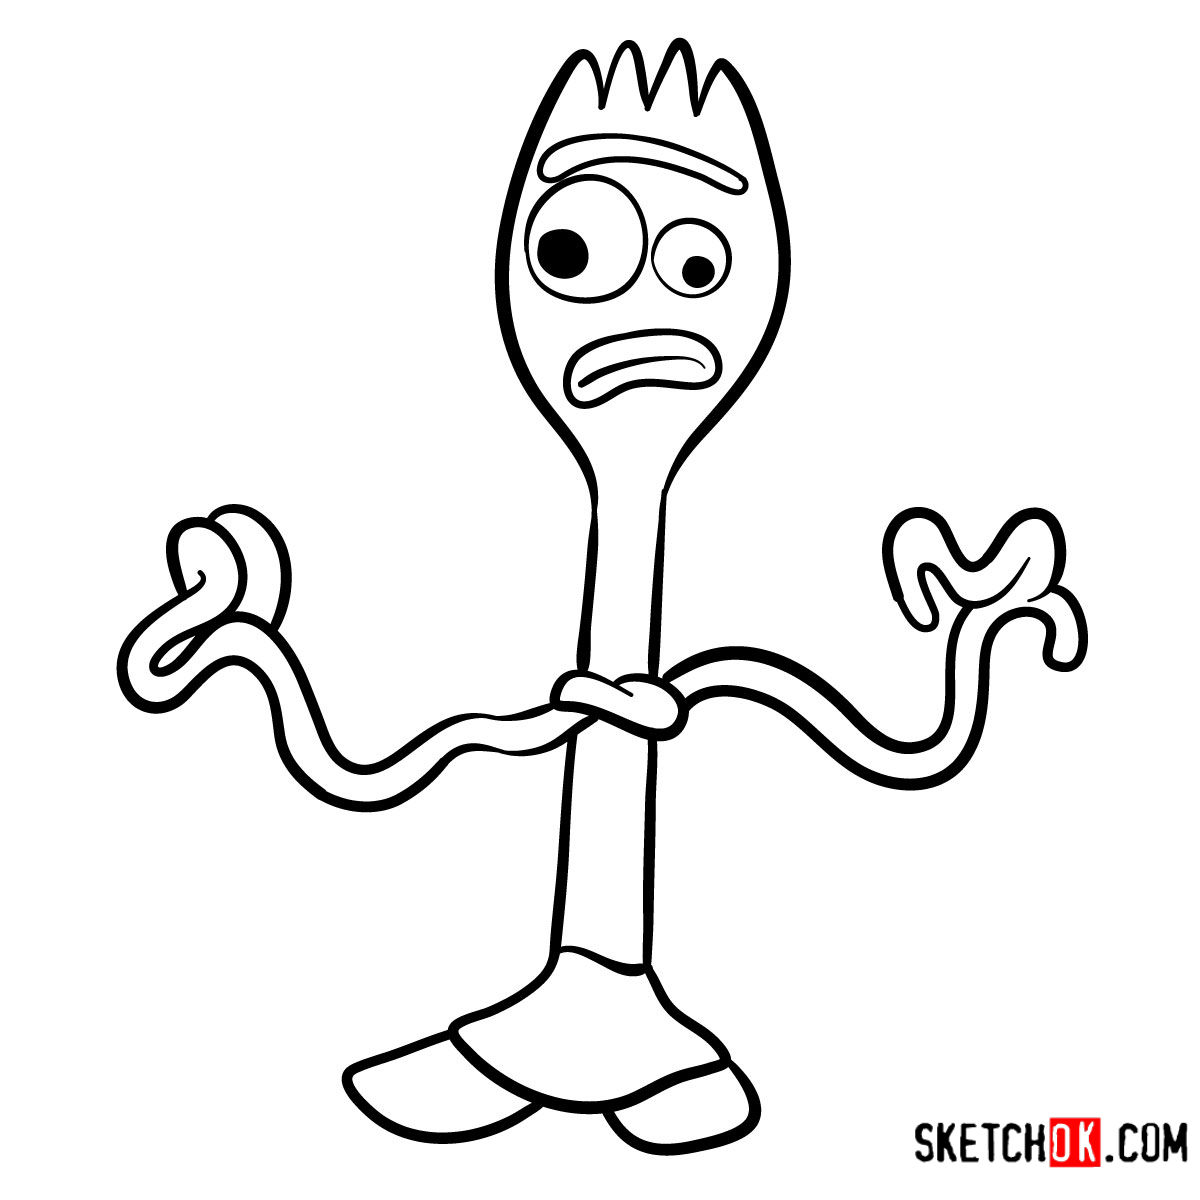 Forky Coloring Pages   Coloring Home